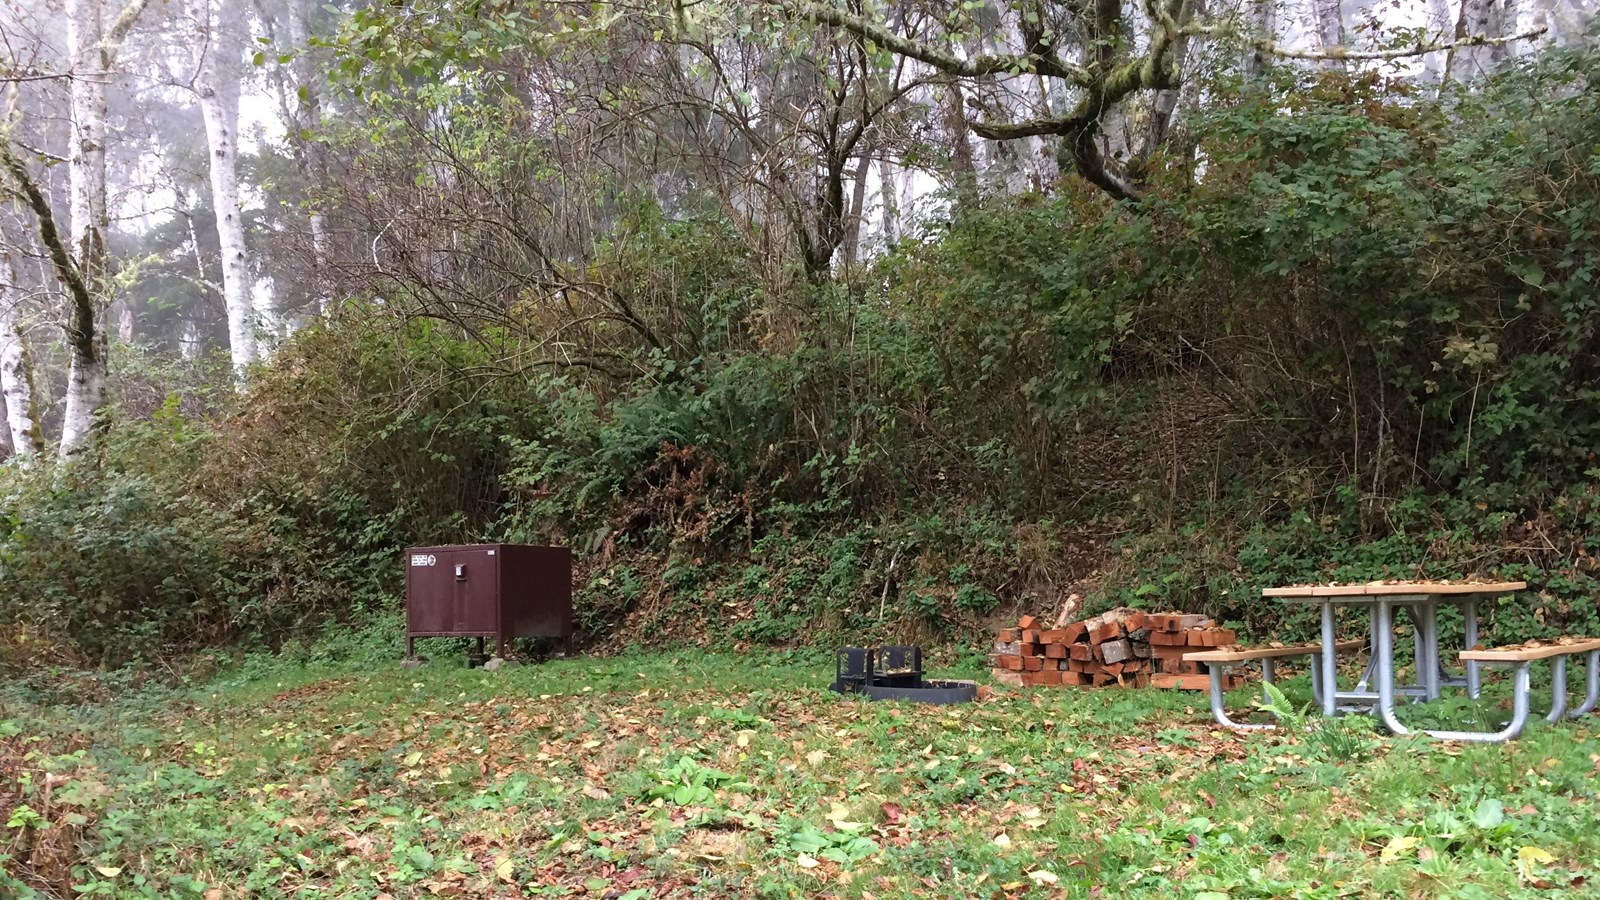 A brown bearproof box, a pile of wood and picnic table next to brush and trees.